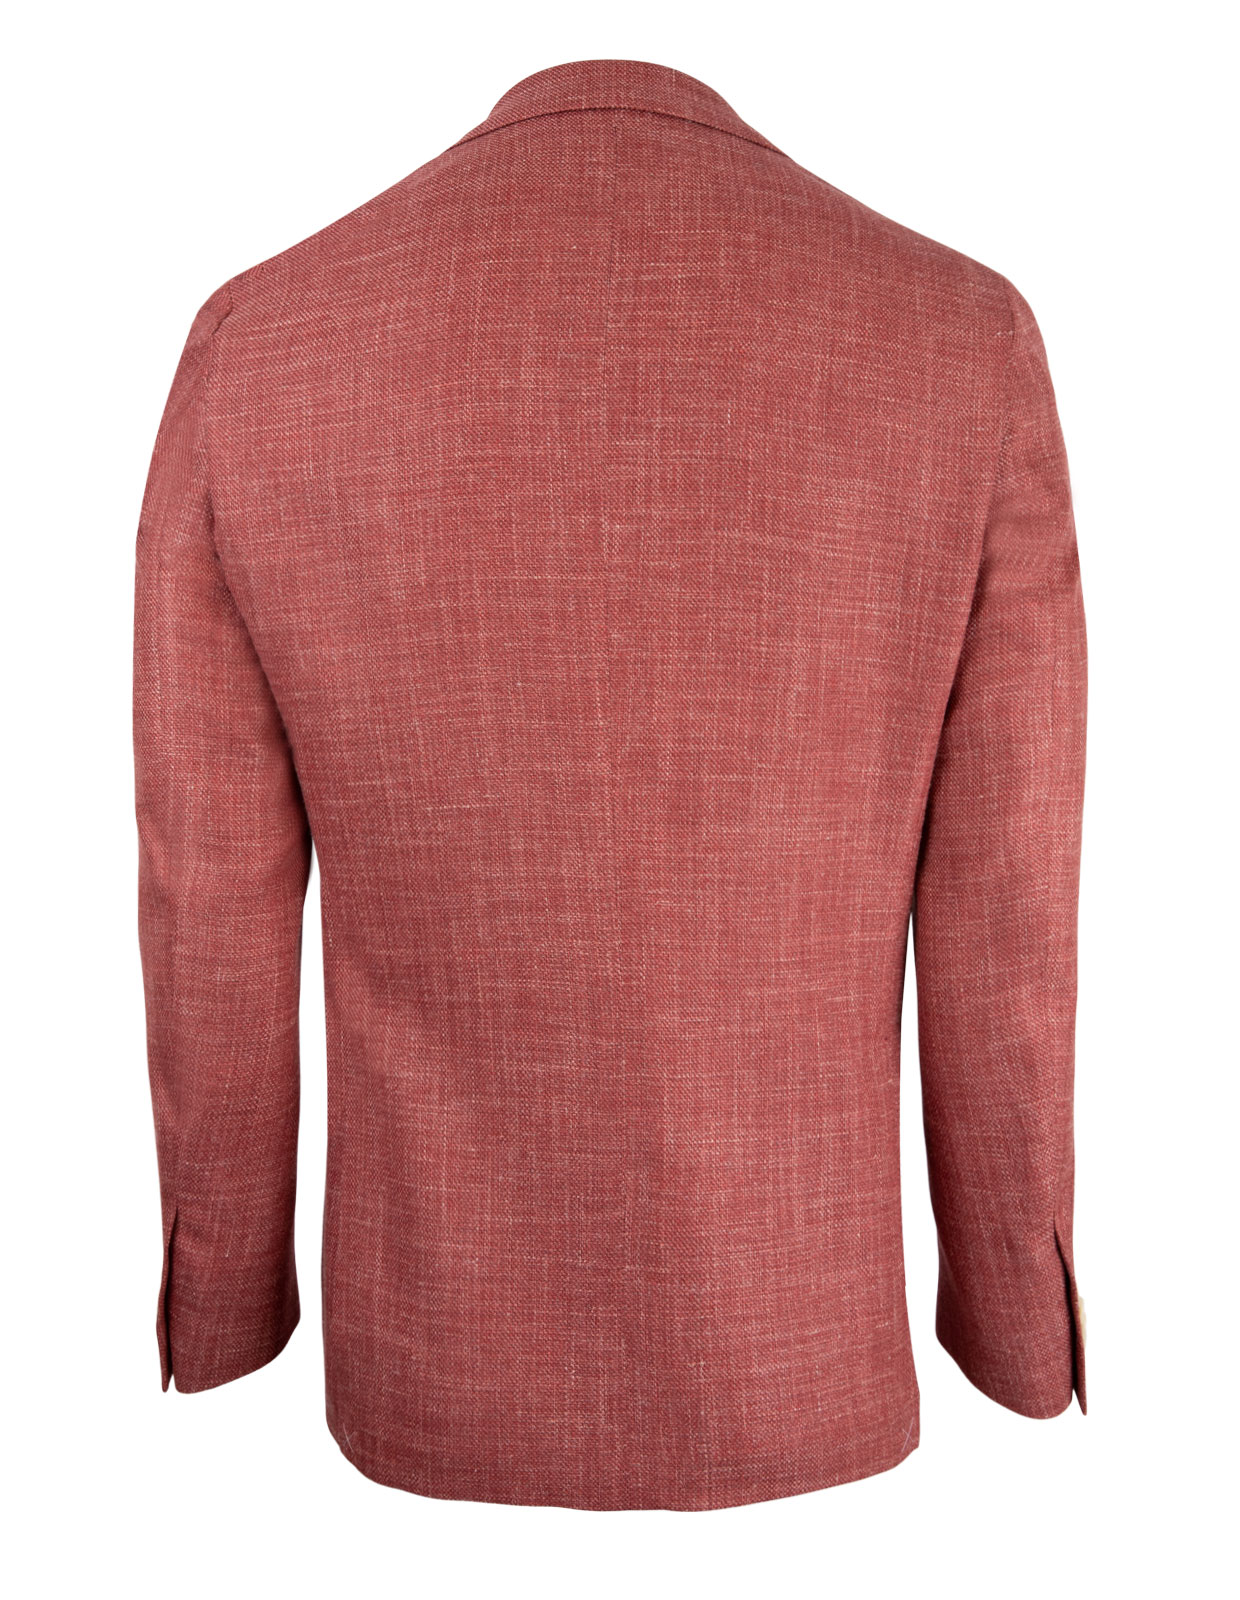 Gate Drop7 Blazer Wool Silk Linen Dusty Red